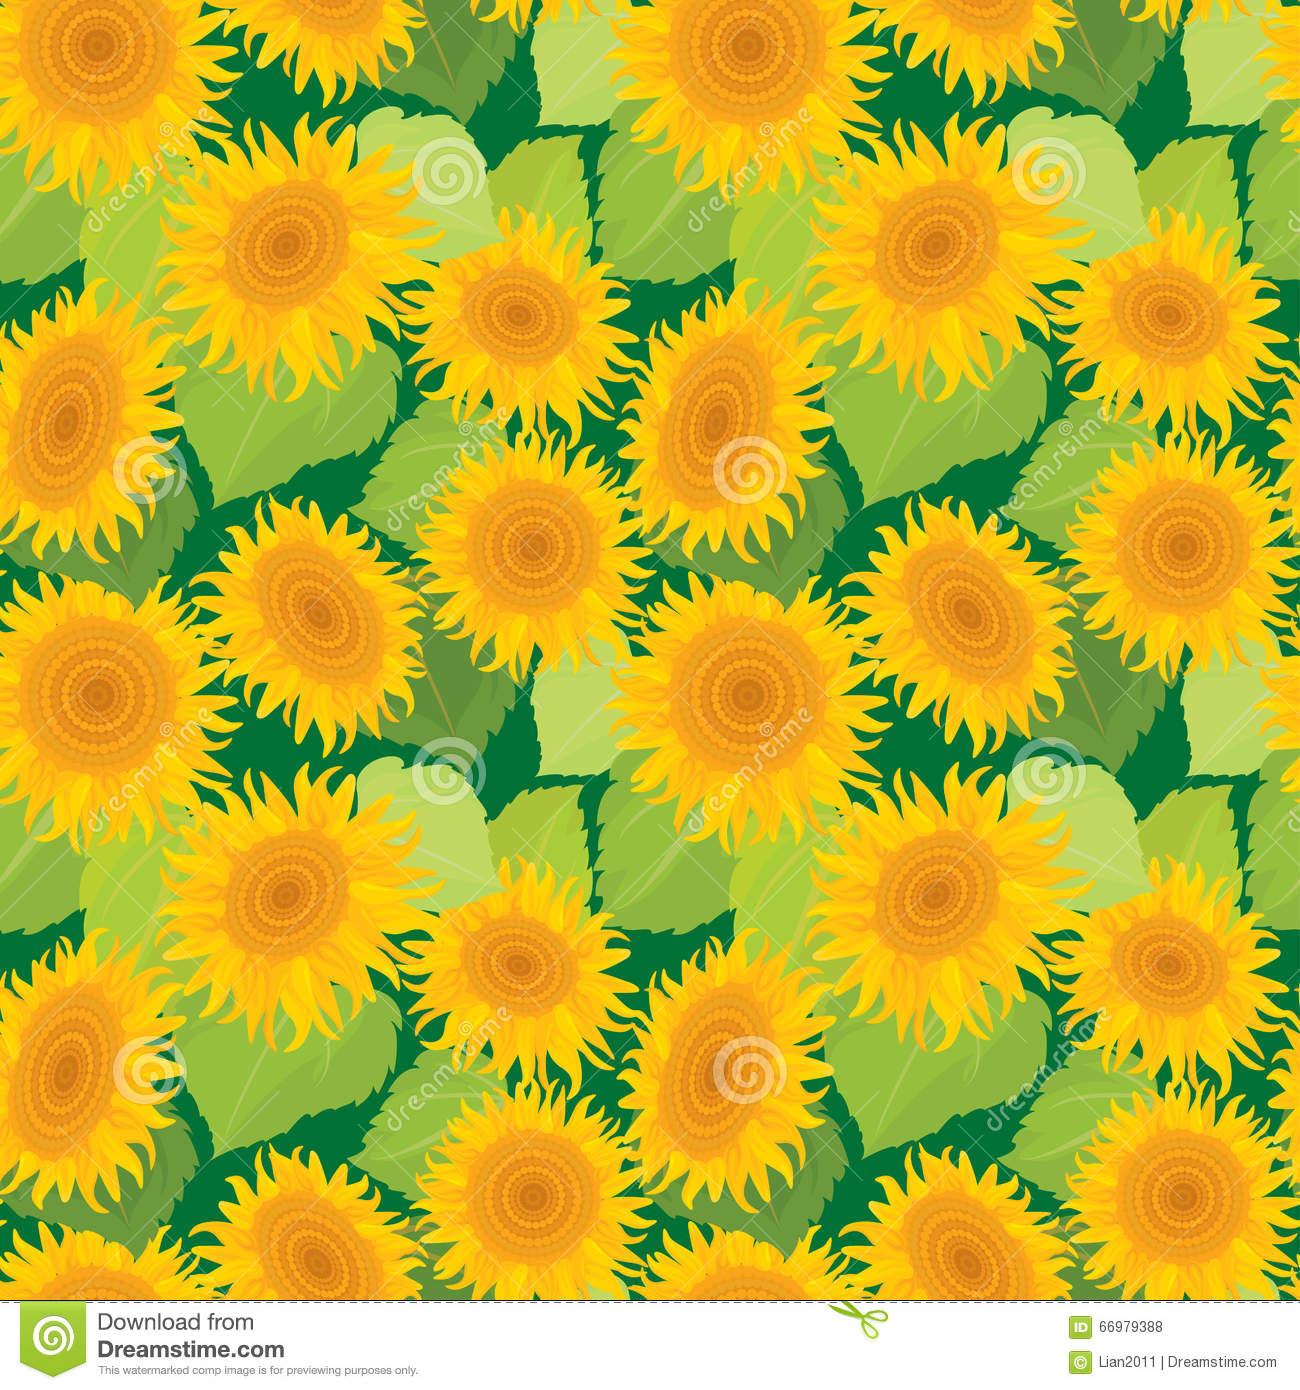 Seamless pattern with sunflowers. Summer season, nature background.